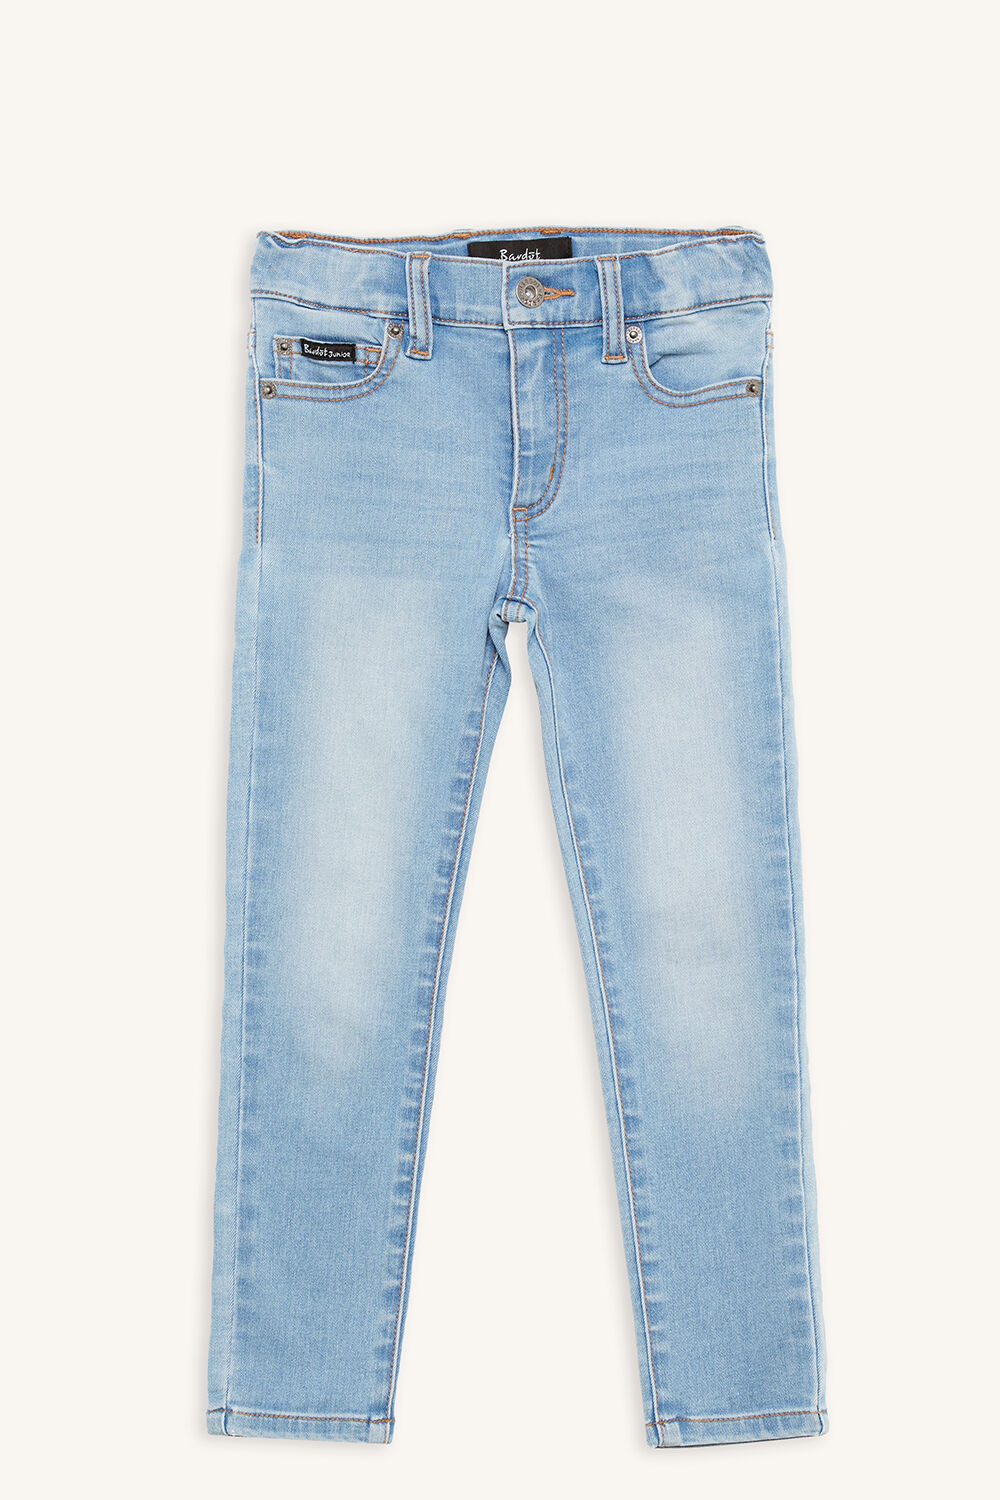 SIENNA MID RISE JEAN in colour TRUE NAVY